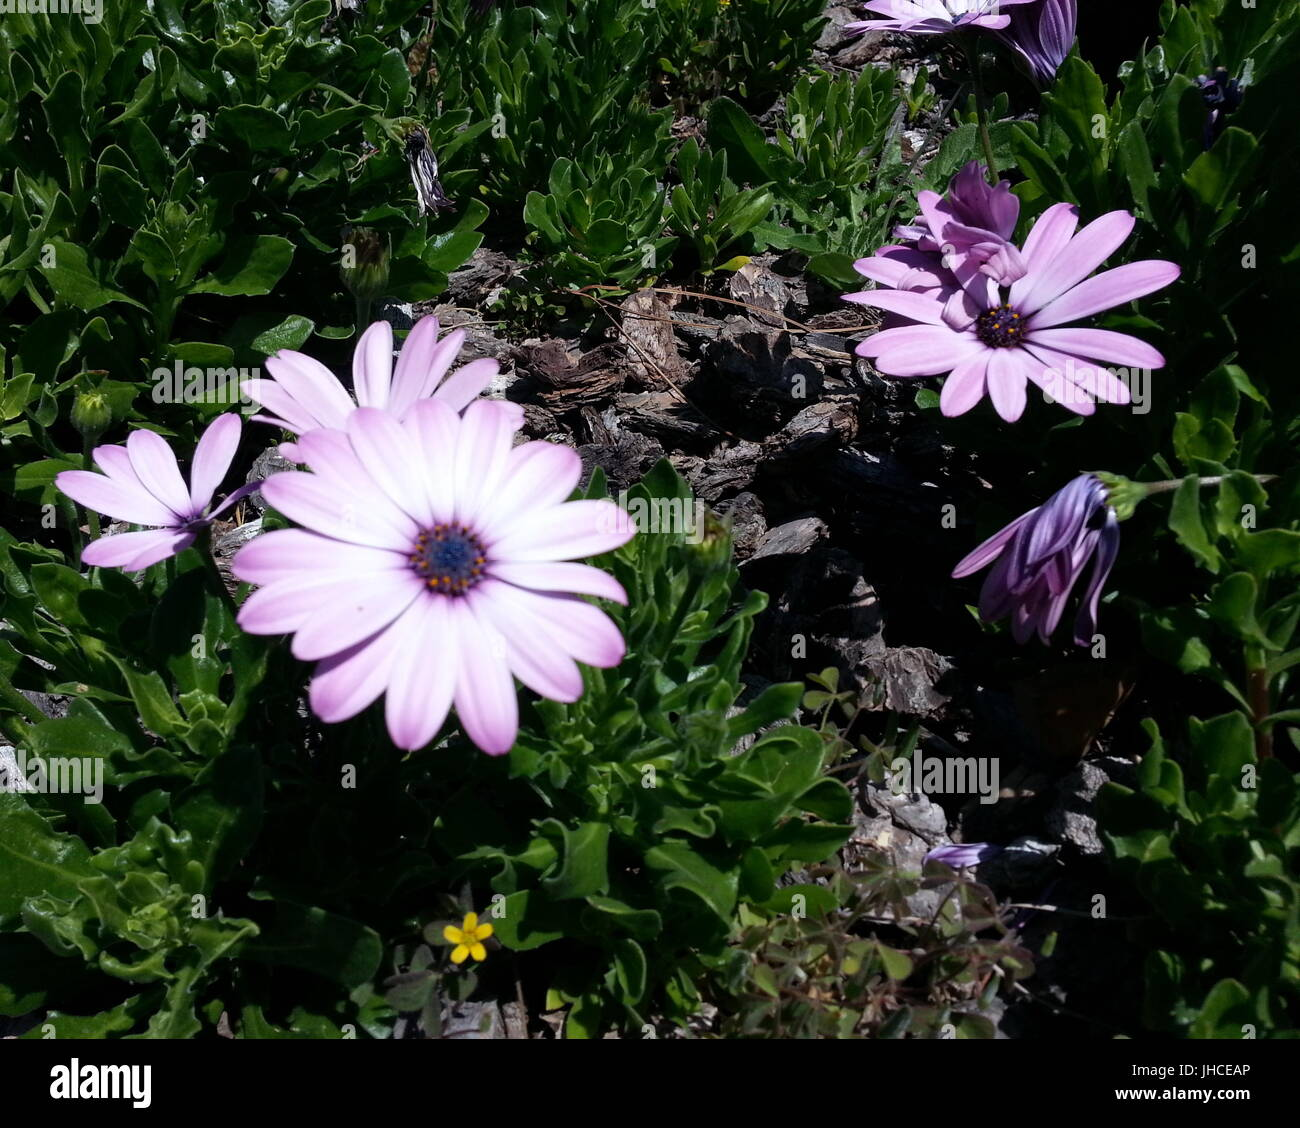 Purple Flower With Blue Center Stock Photos Purple Flower With